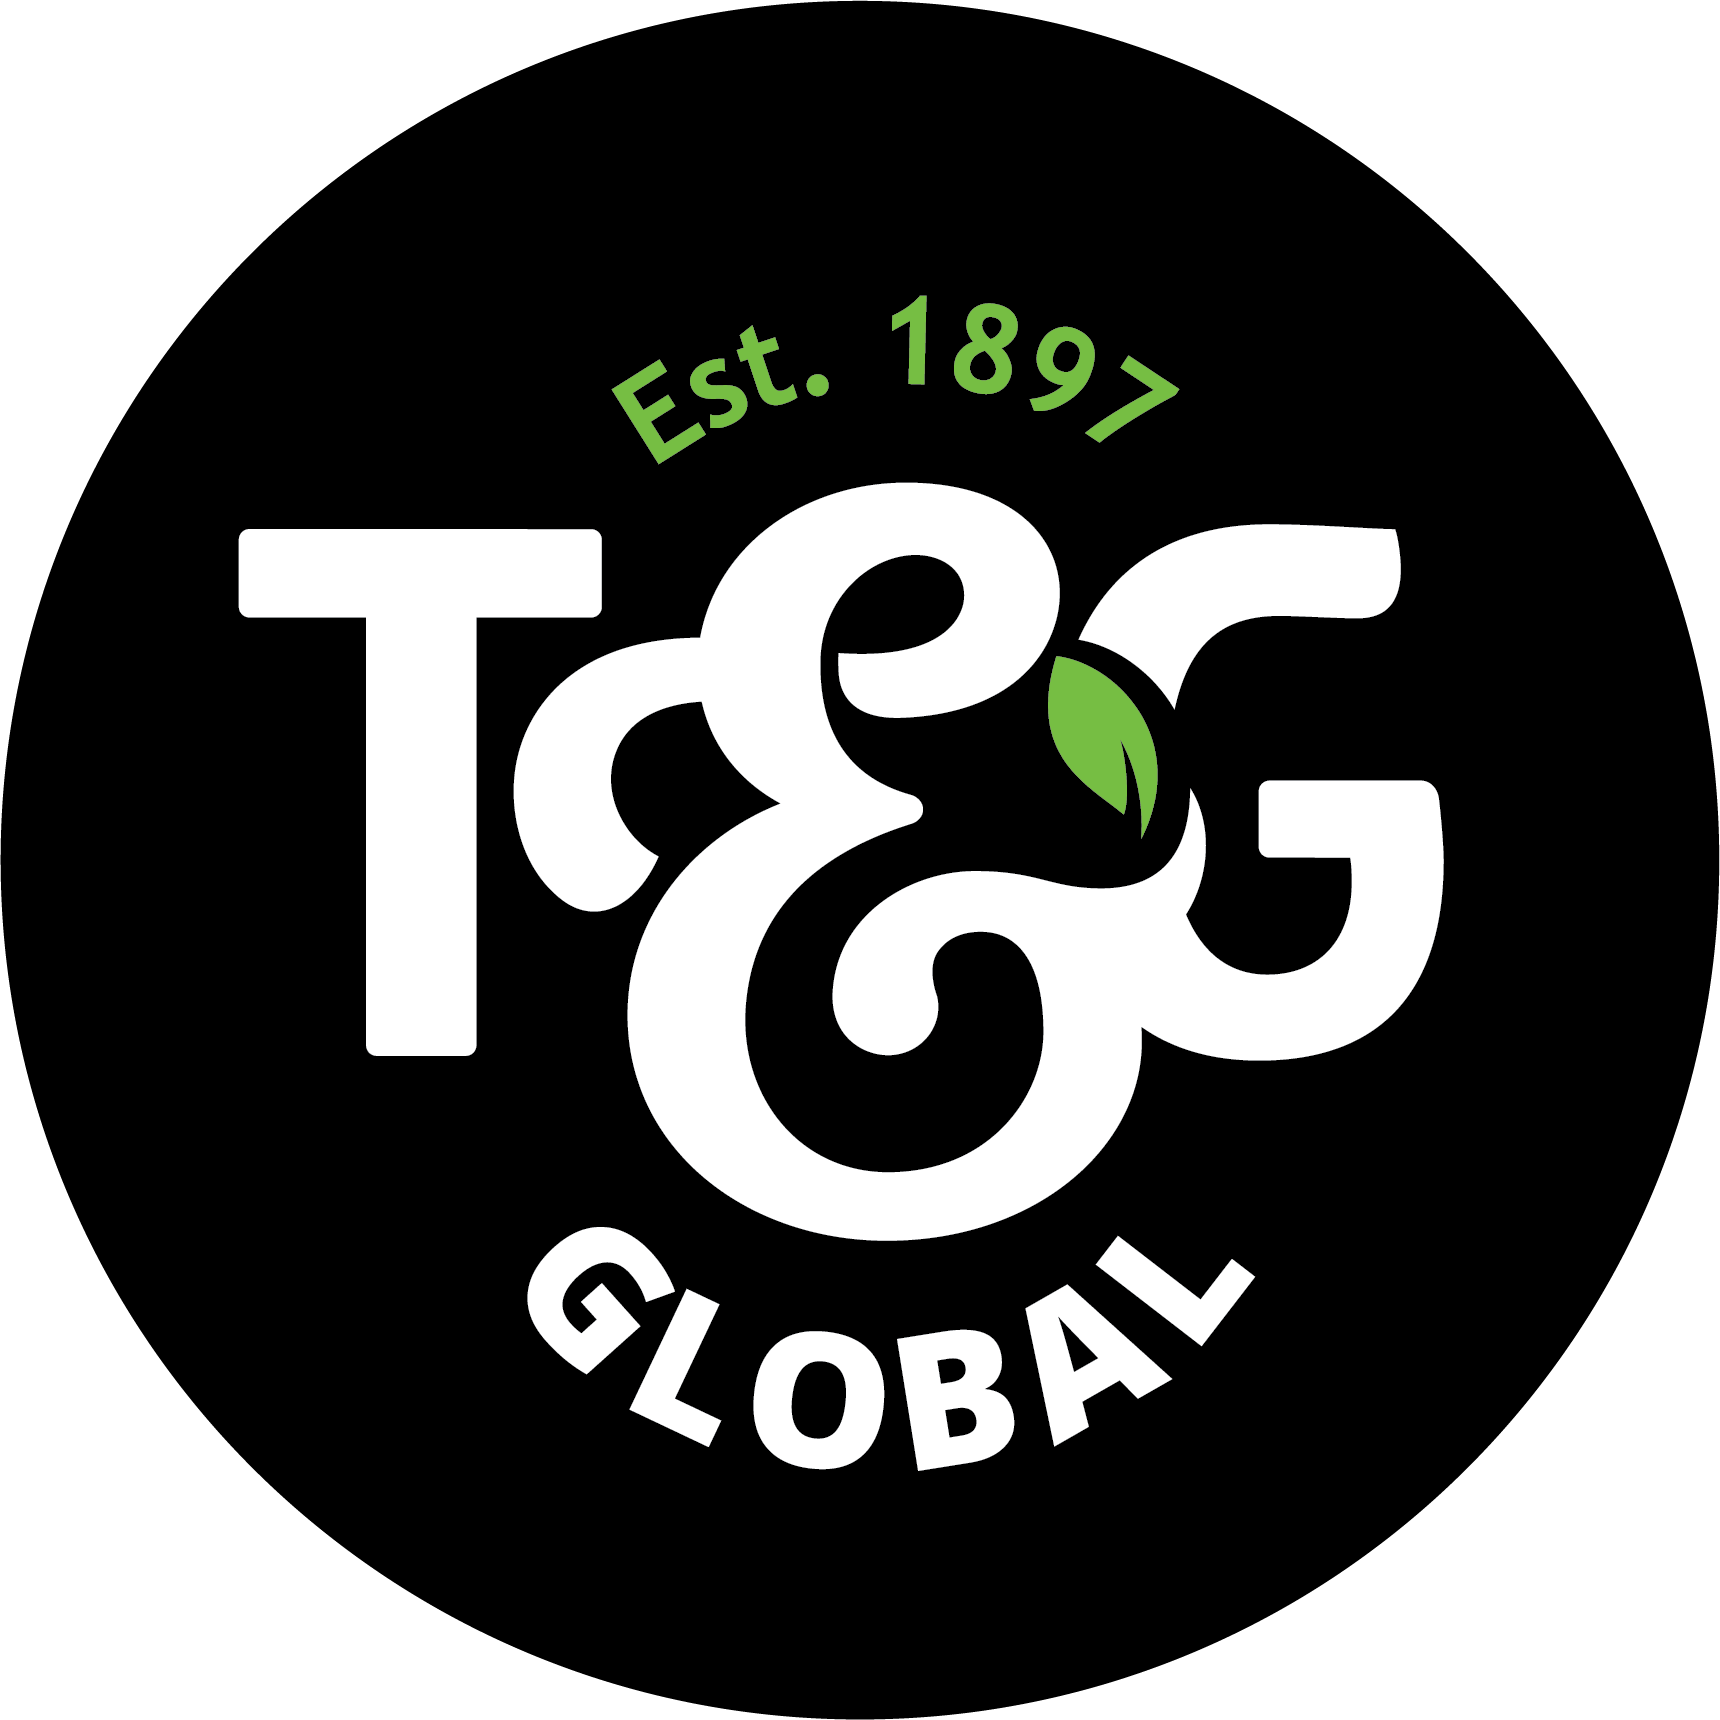 T&G Global 2018.png